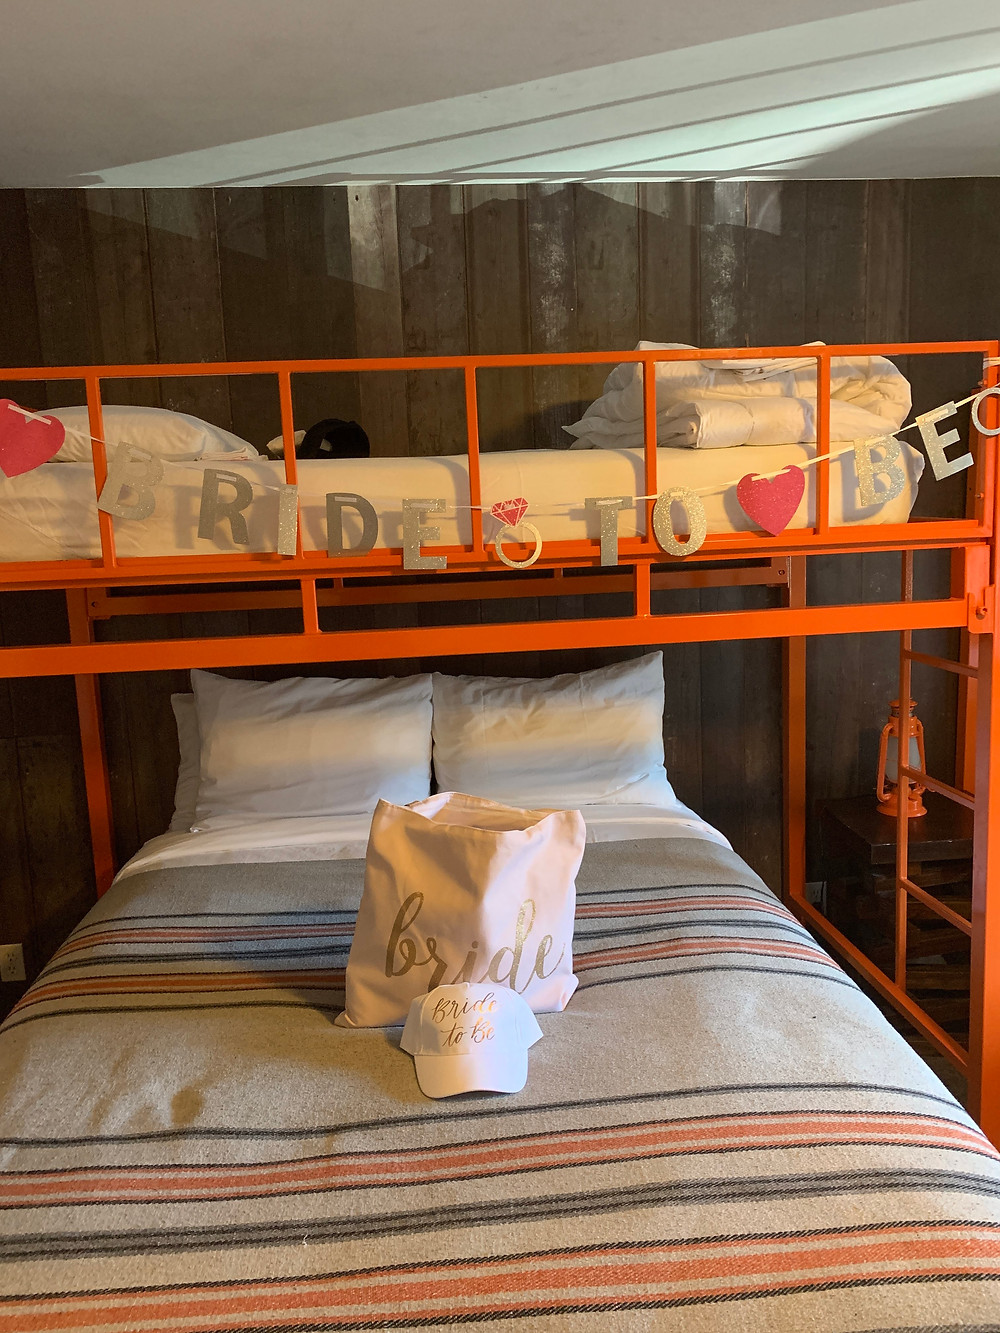 Bachelorette Decorated Room at Basecamp South Lake Tahoe